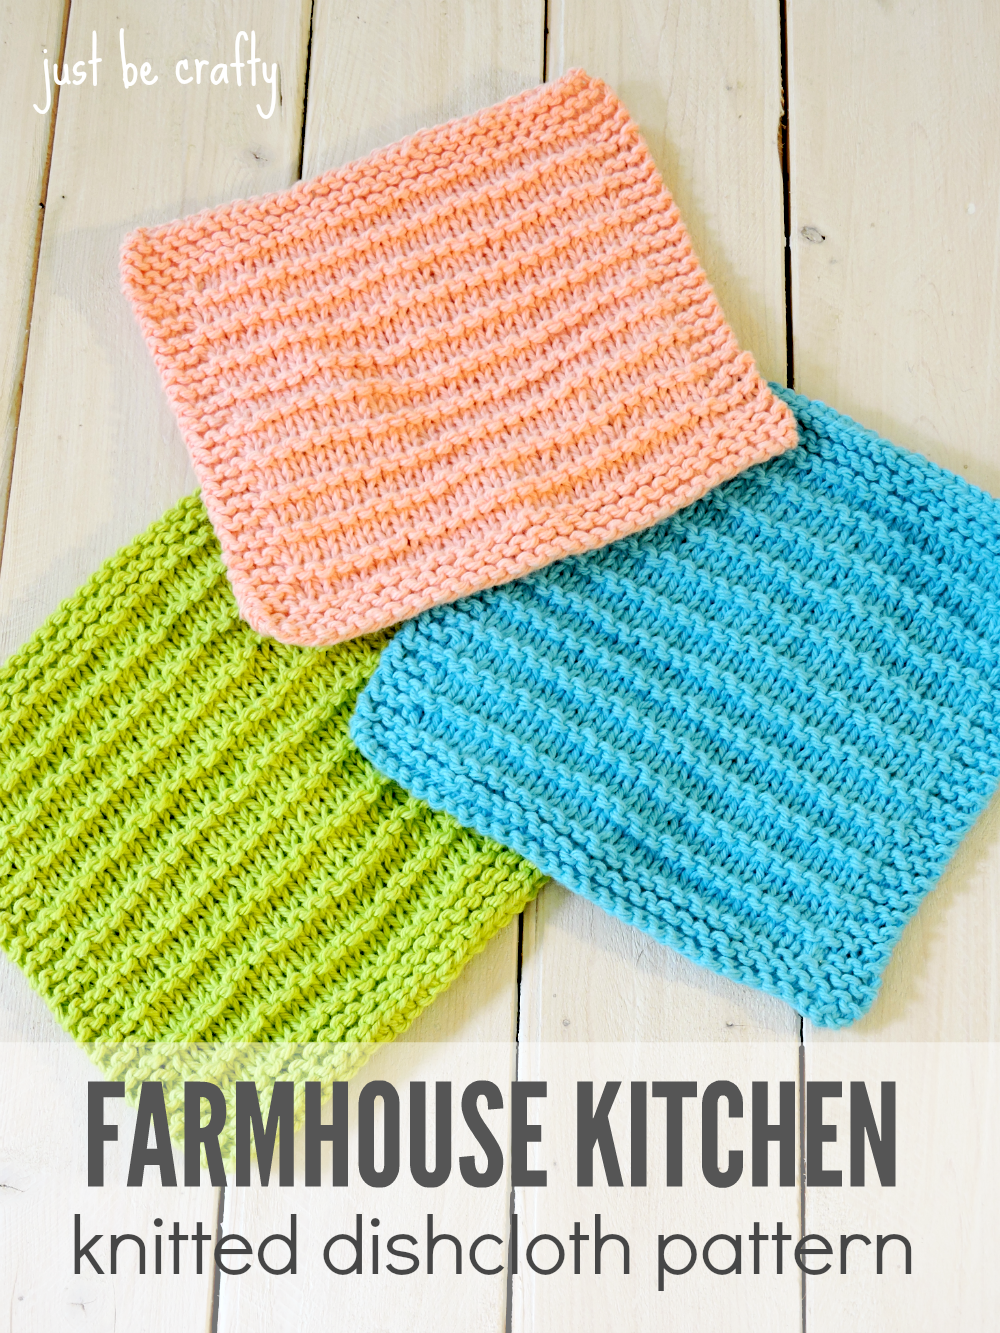 Farmhouse Kitchen Knitted Dishcloths | Topflappen, Strickmuster und ...